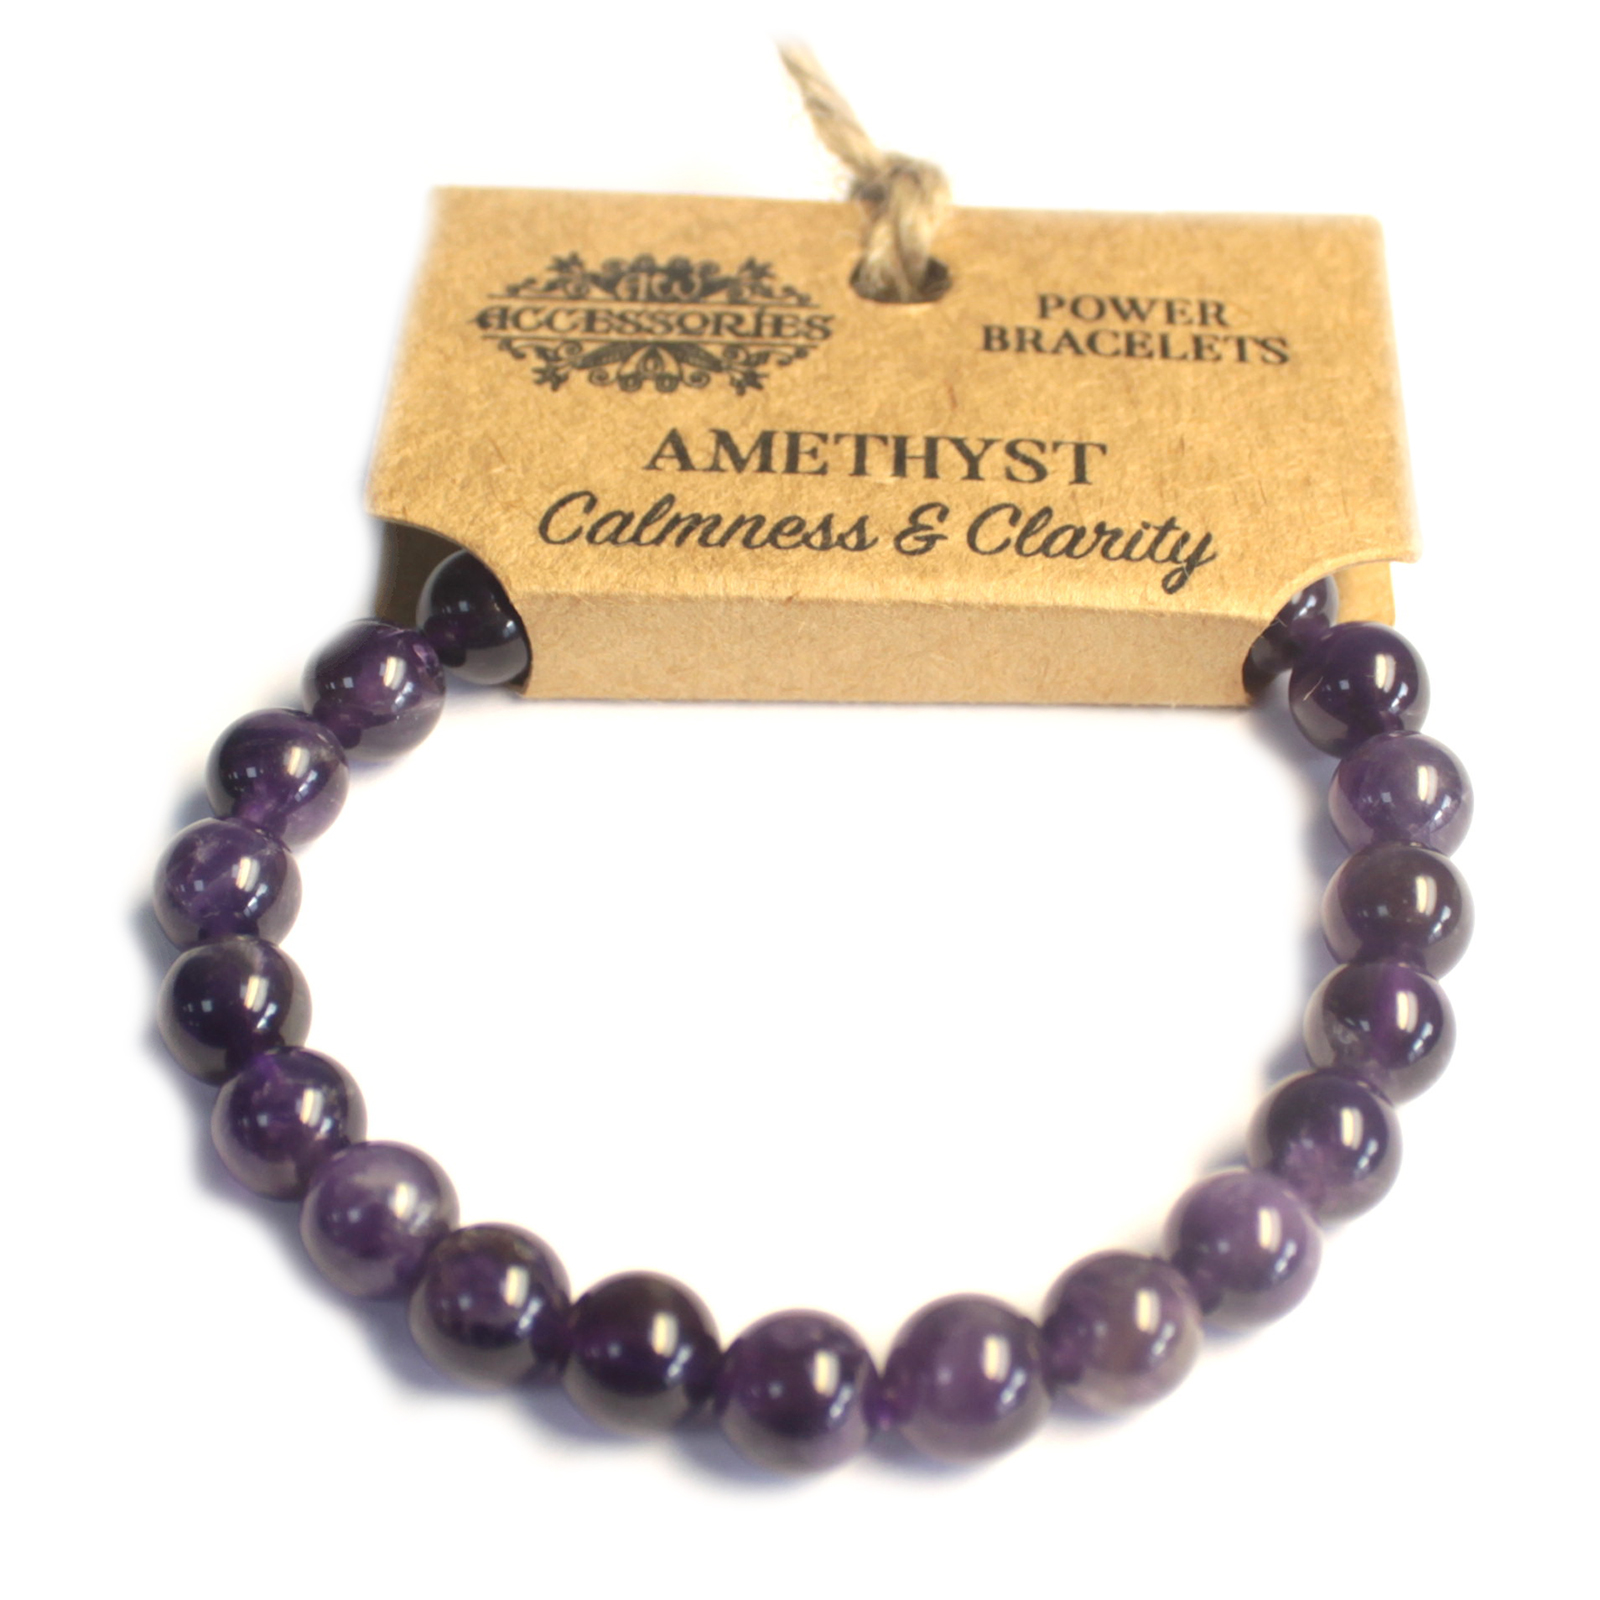 Power Bracelet - Amethyst